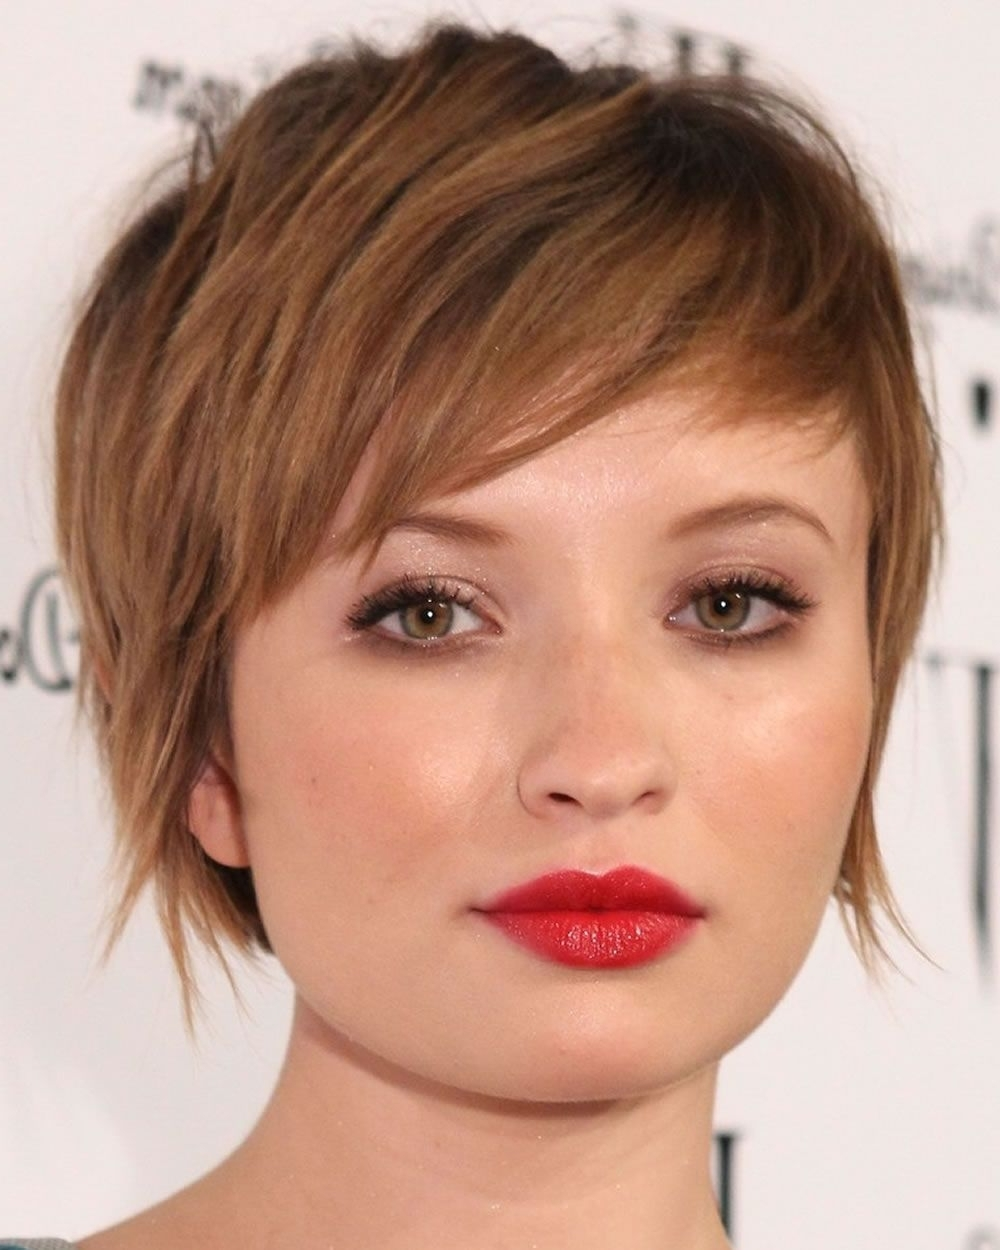 Pixie Hairstyles Fine Hair For Round Face Page Of Widescreen Long For 2018 Pixie Hairstyles For Fine Hair (View 12 of 15)